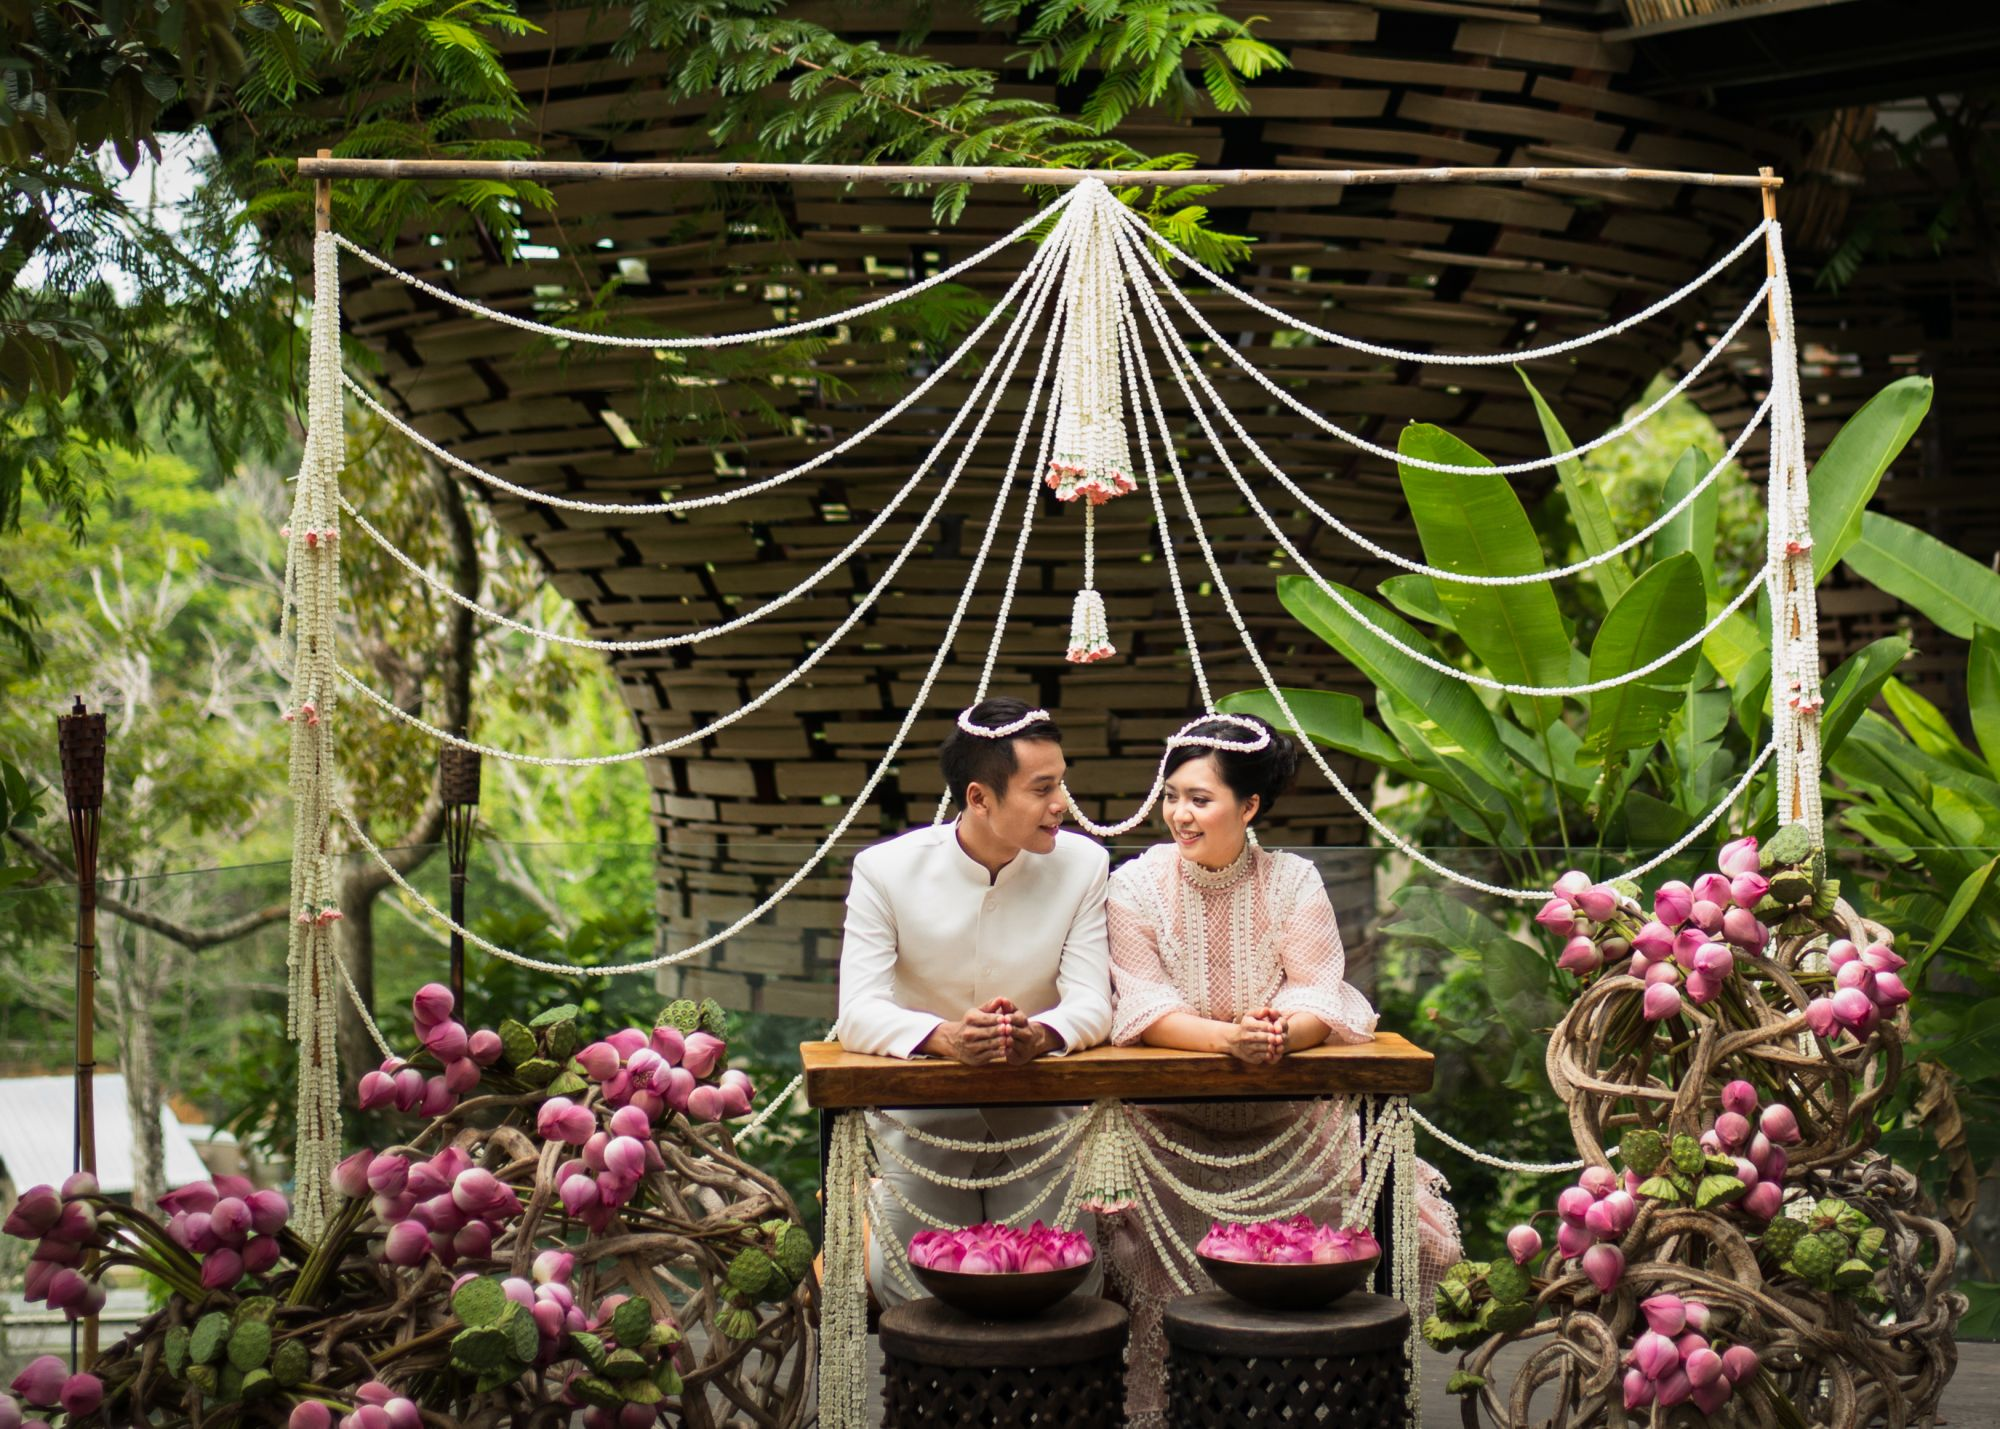 6 Venues For An Unforgettable Destination Wedding In Southeast Asia